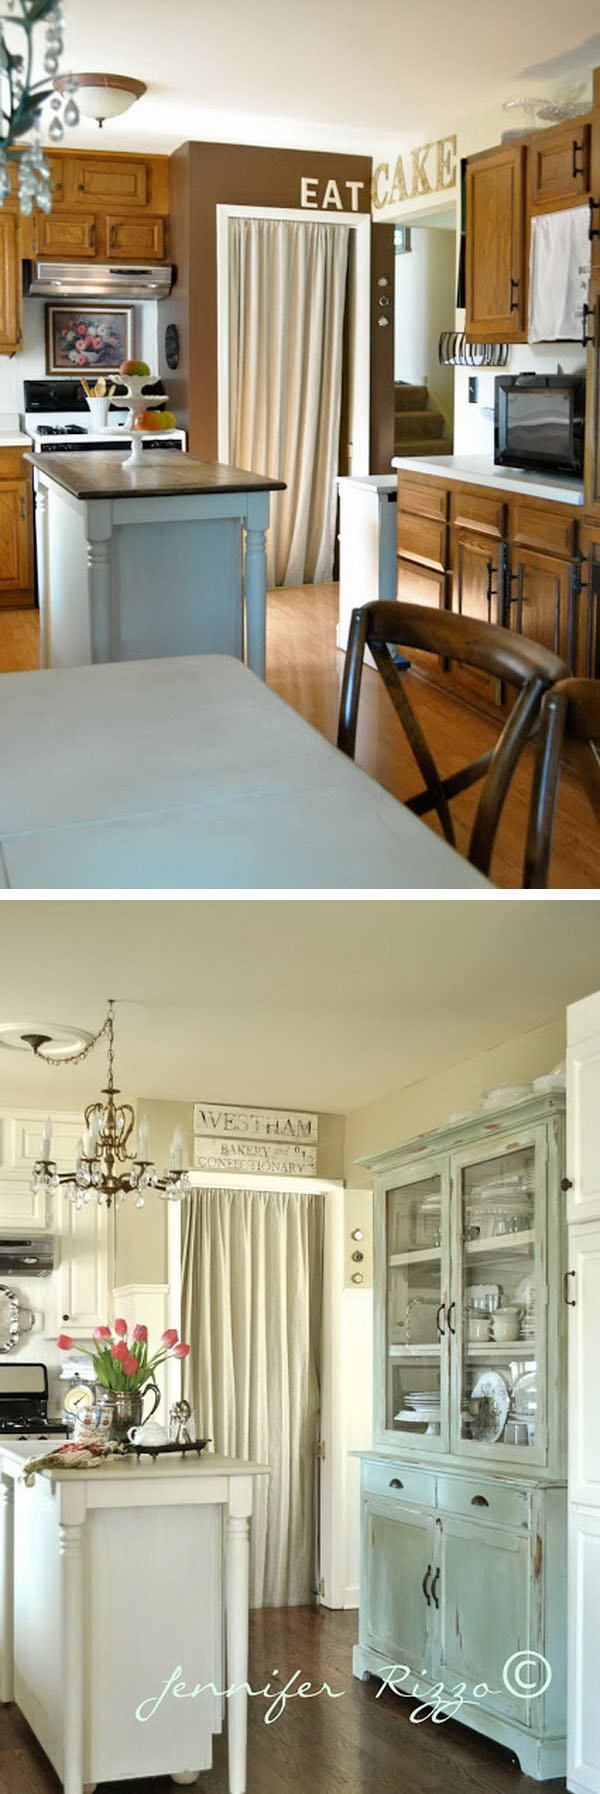 Before & After: Shabby Chic